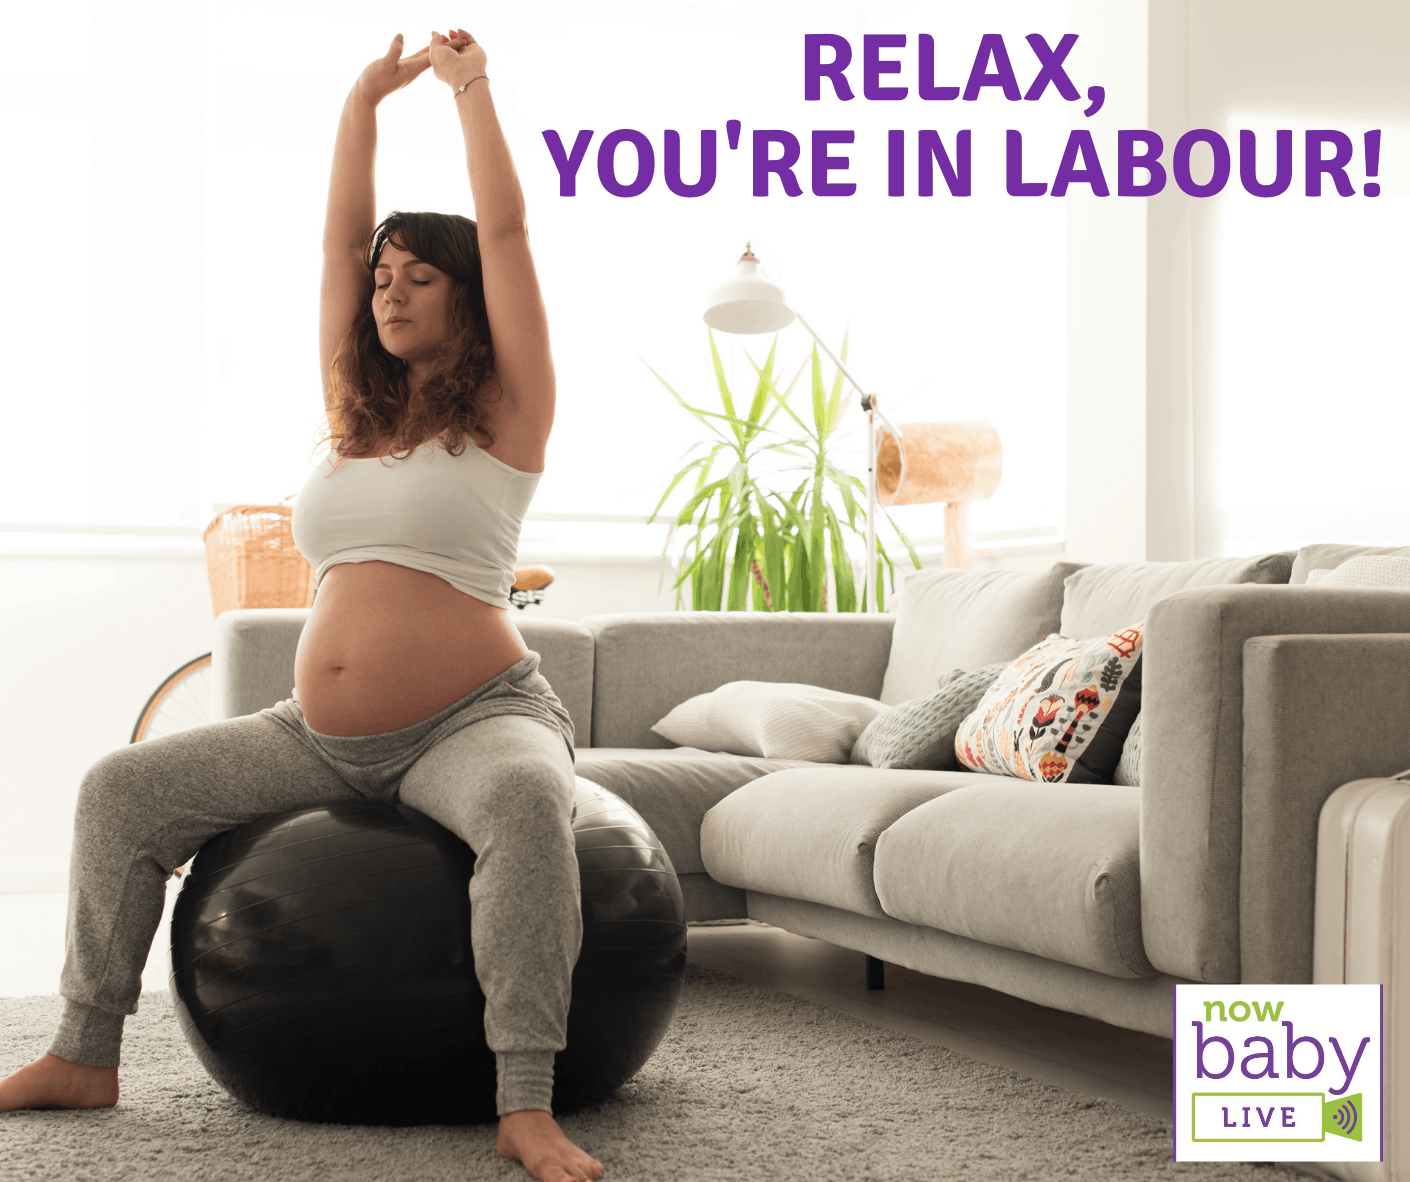 Relax, you're in labour!